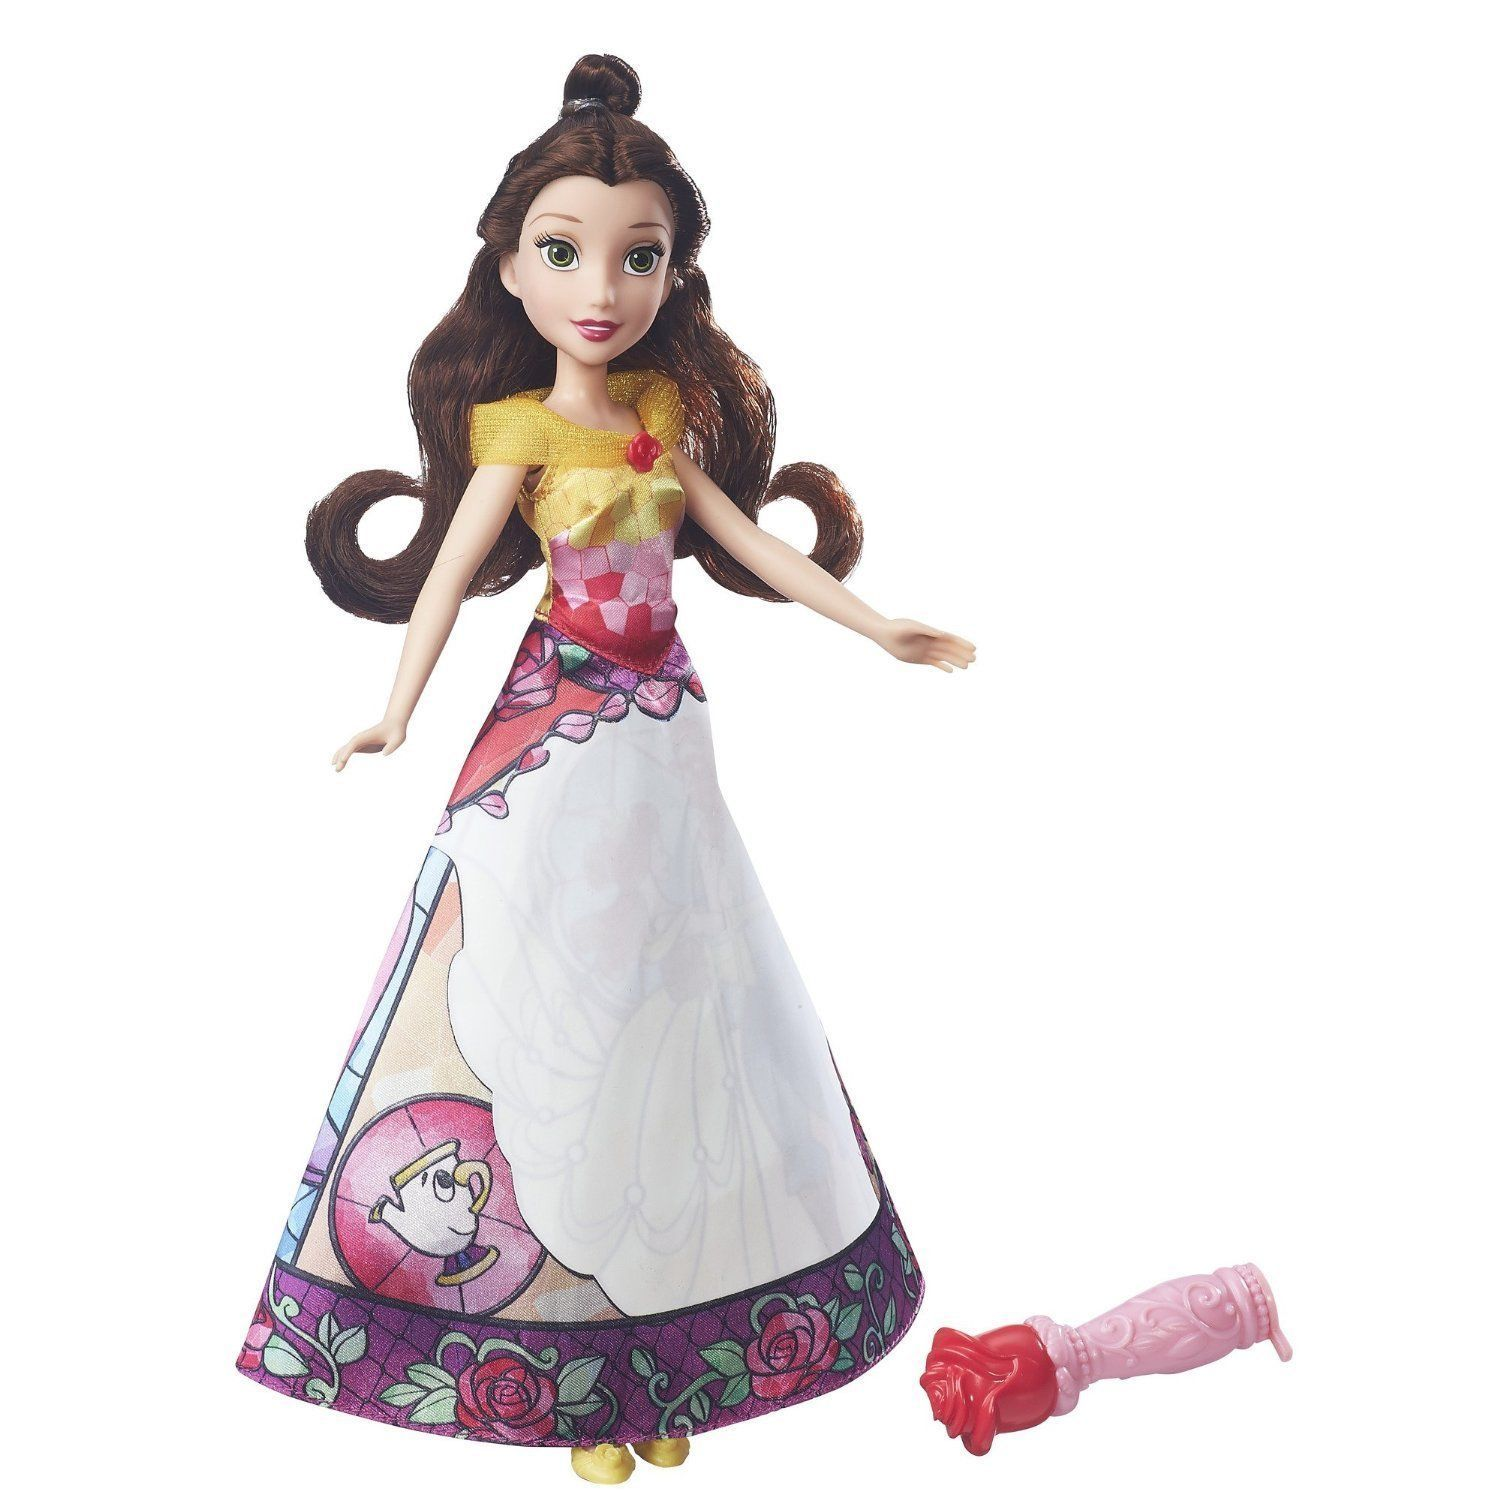 Image 1 of Disney Princess Belle's Magical Story Skirt Doll in Fuchsia/Yellow by Hasbro